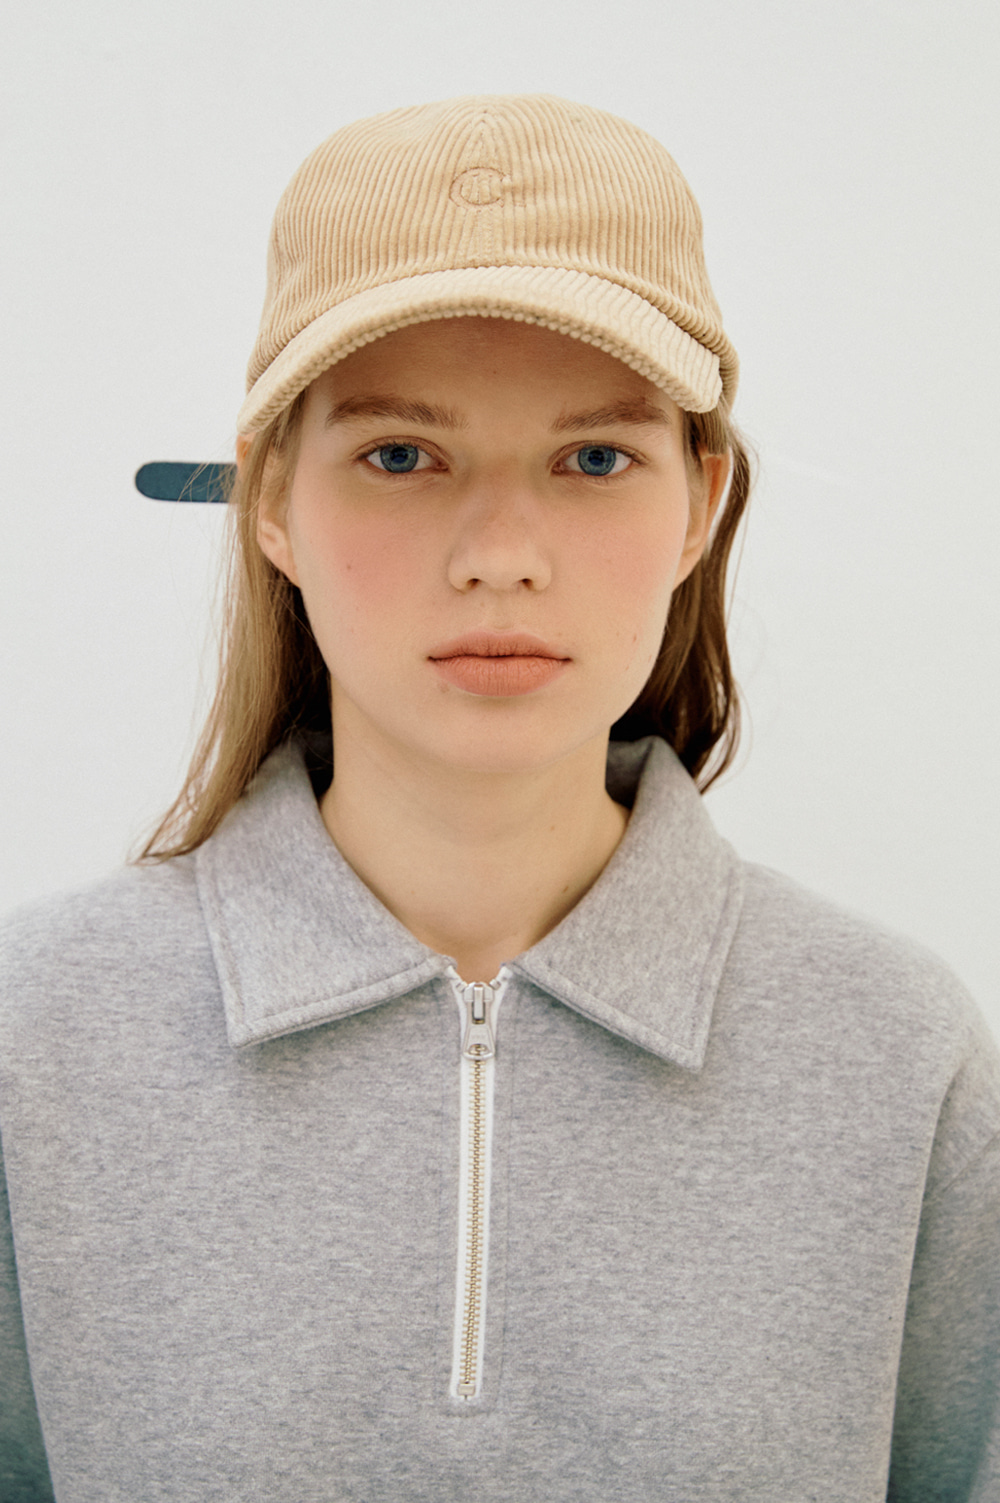 Basic Fit Ball Cap (Corduroy Brown)